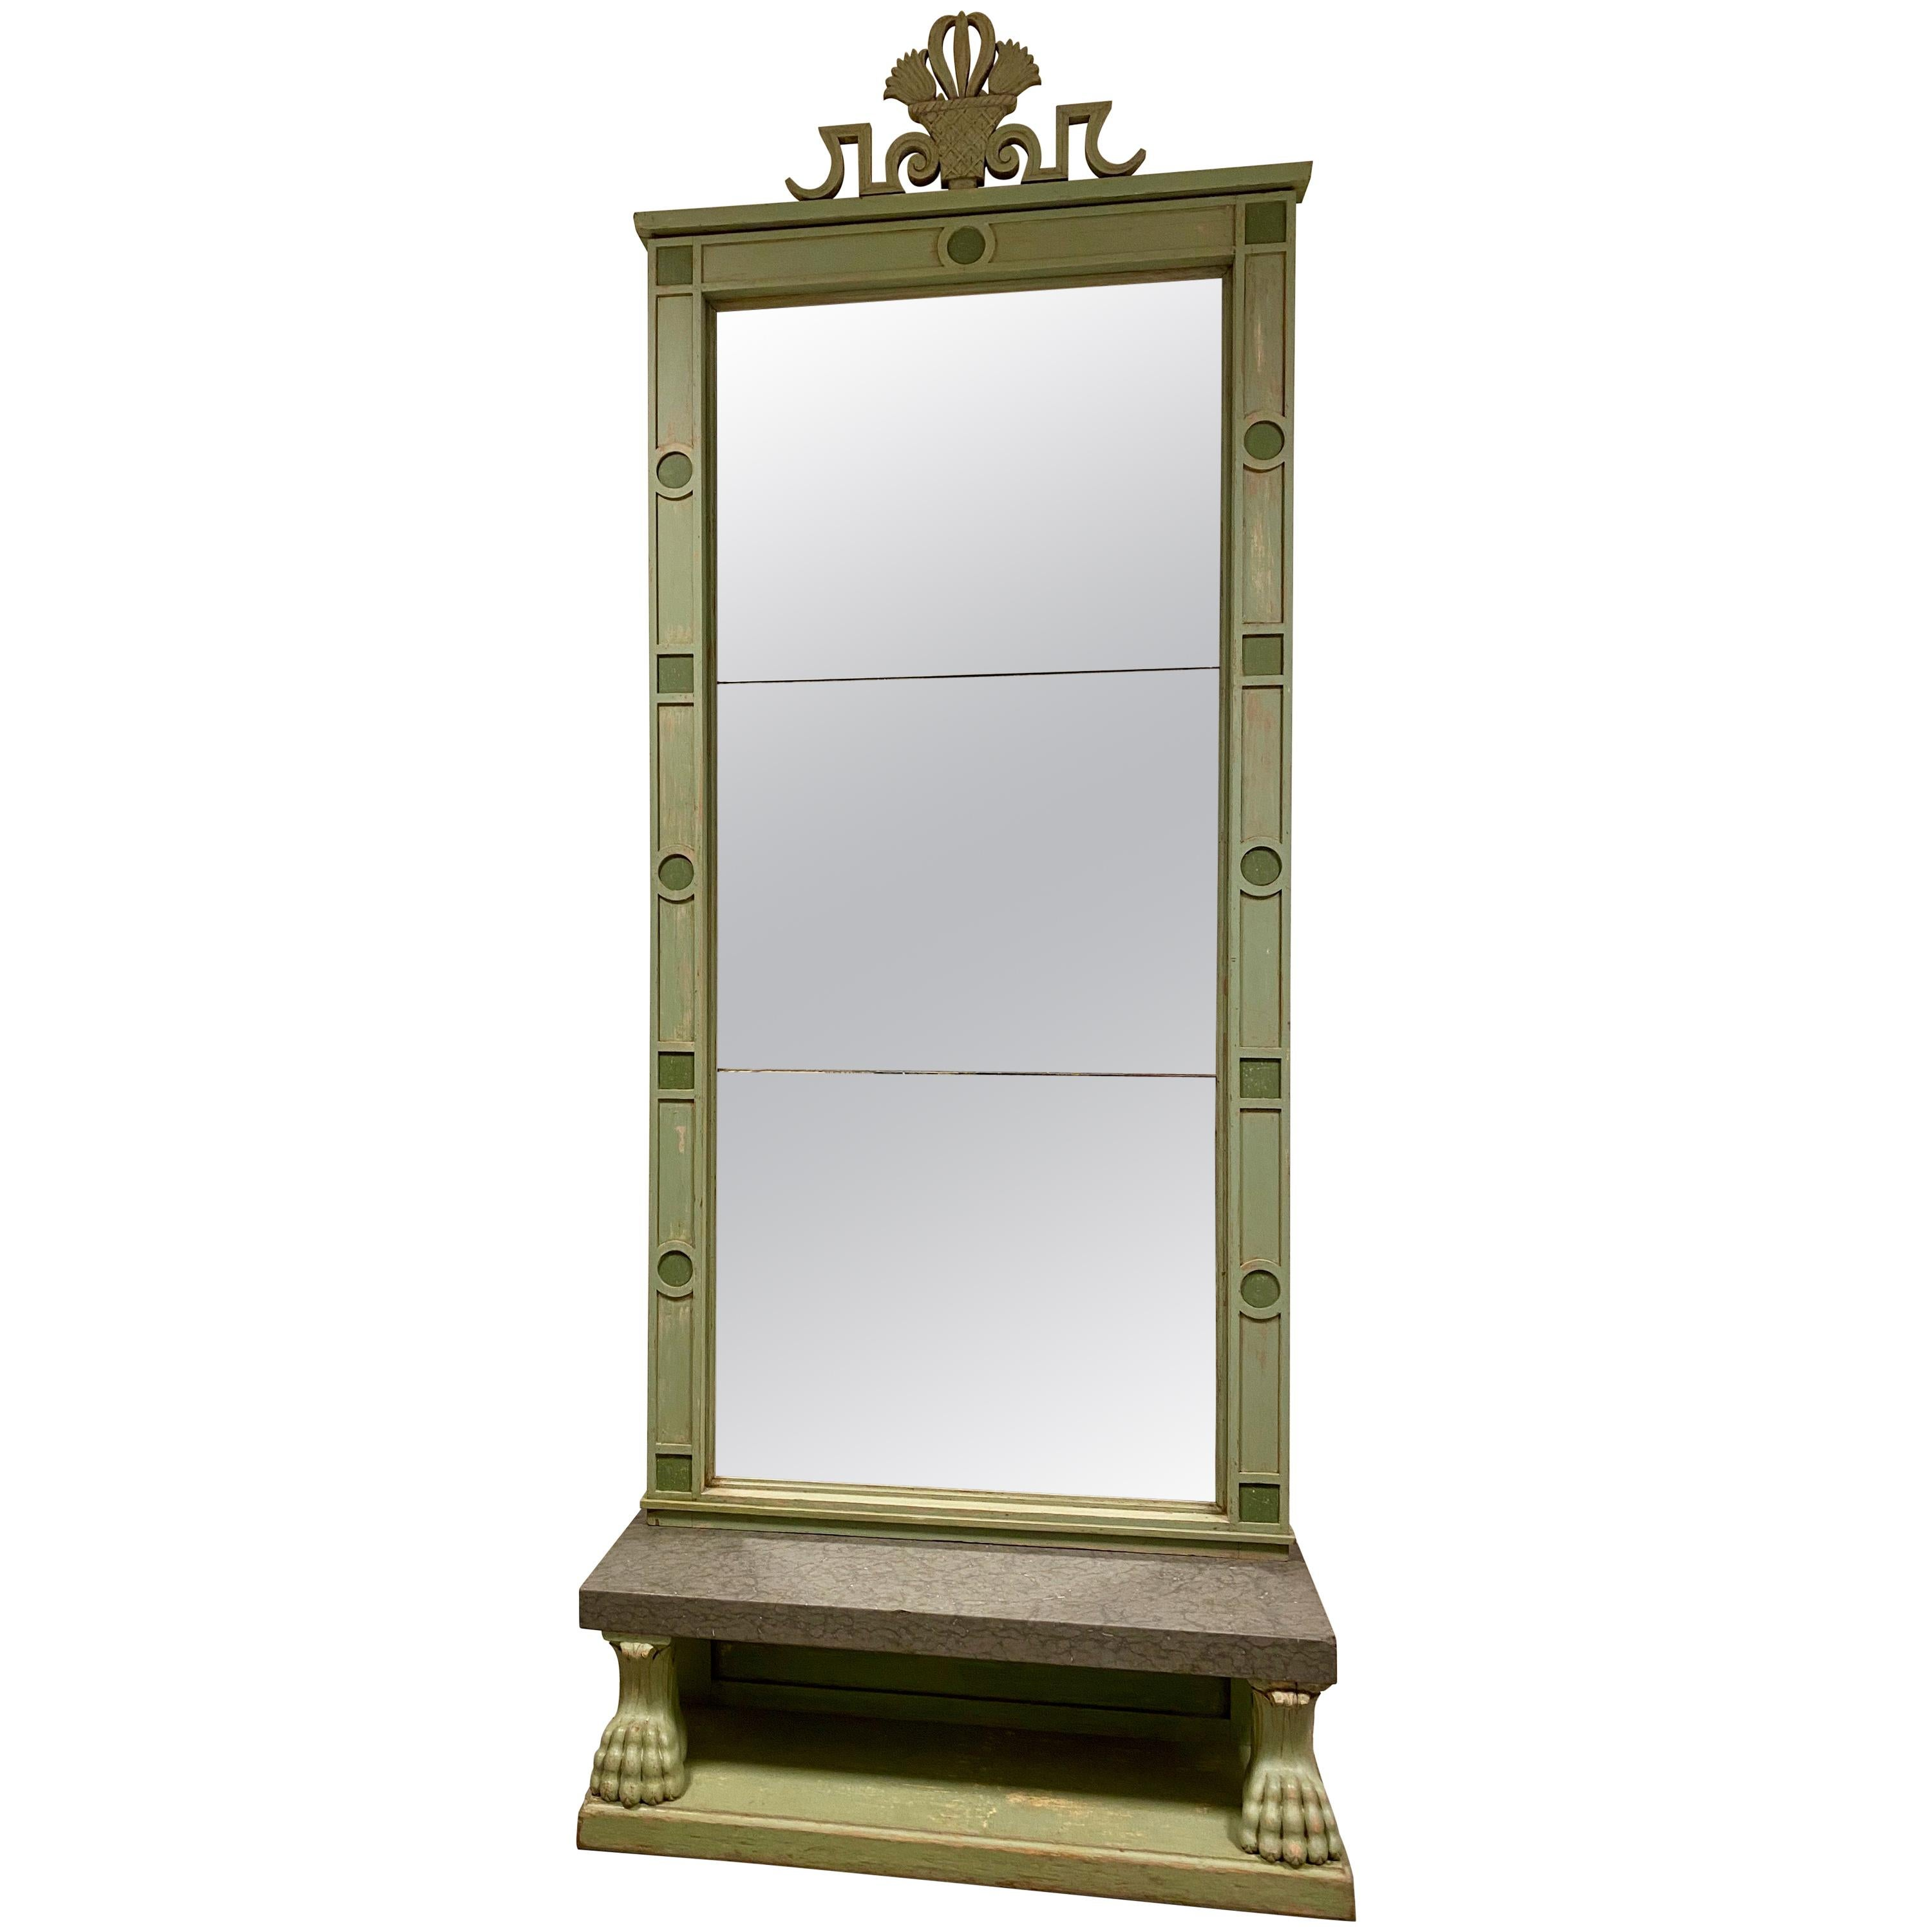 Mirror with Table, Swedish Grace, 1920s